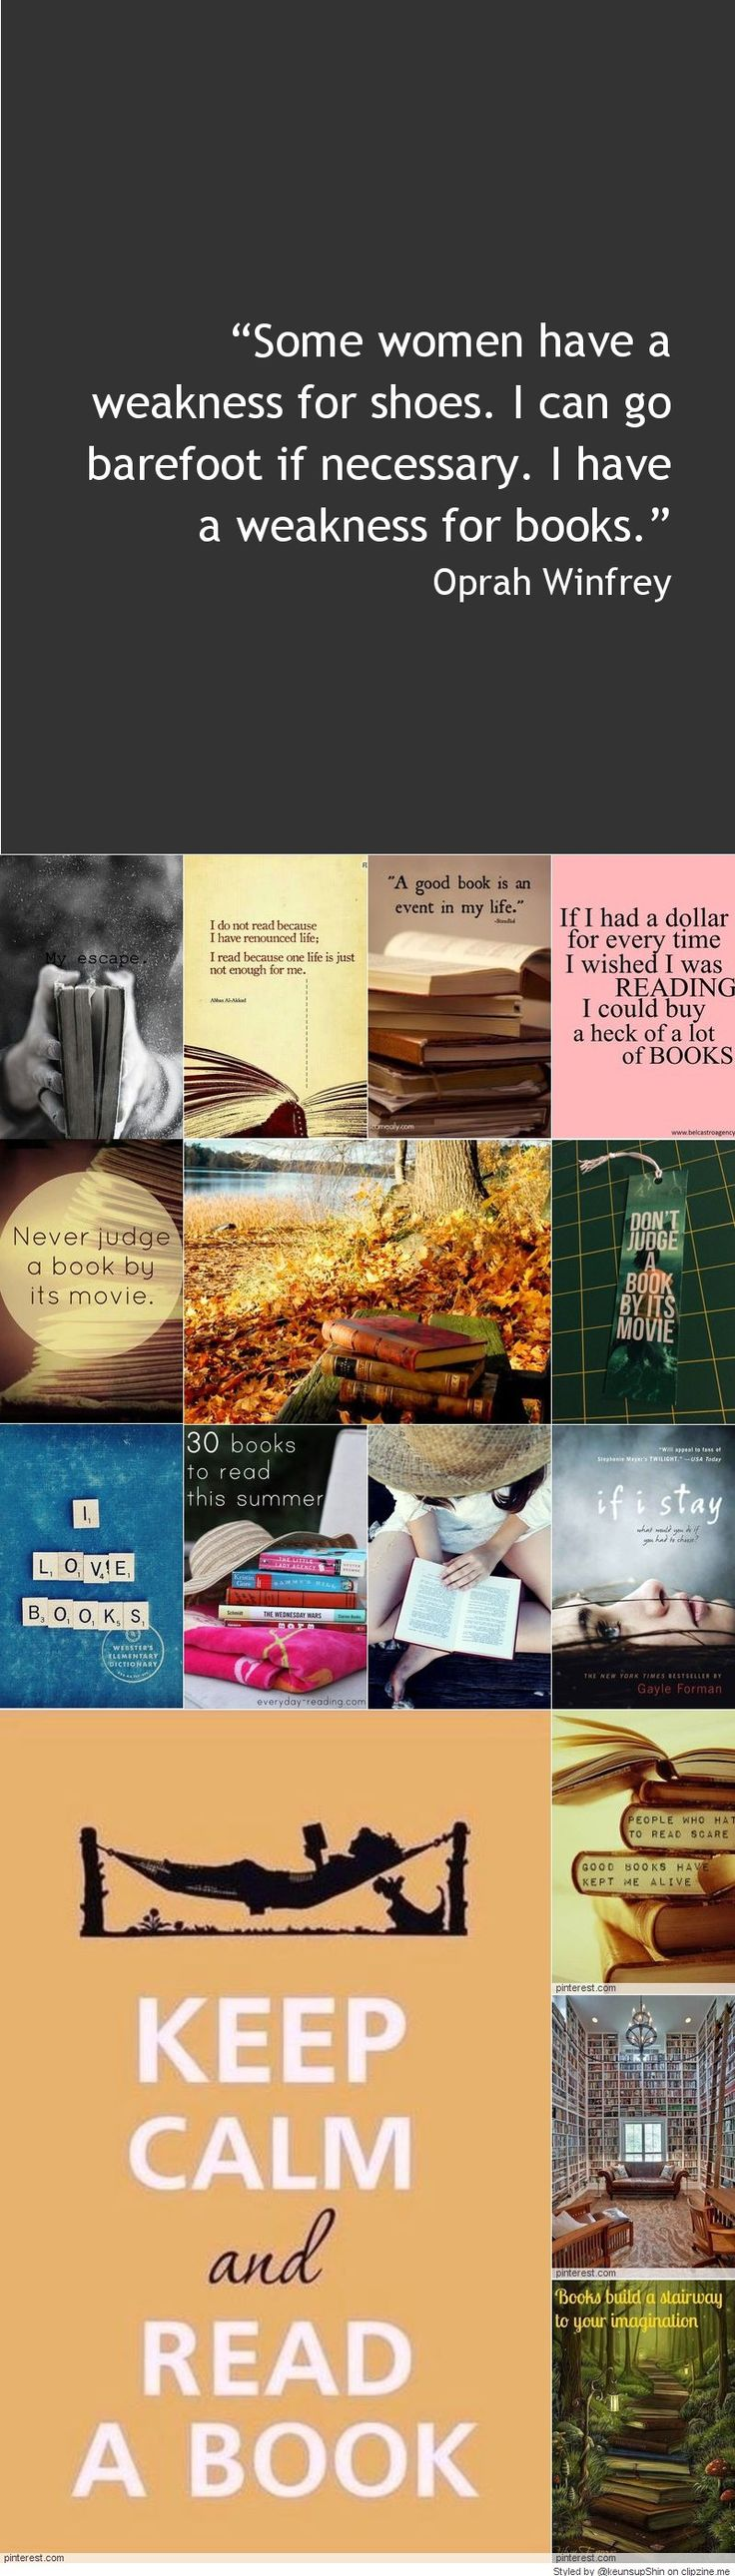 25 best livros images by gabriela otto on pinterest livros book books and more books books reading fandeluxe Images